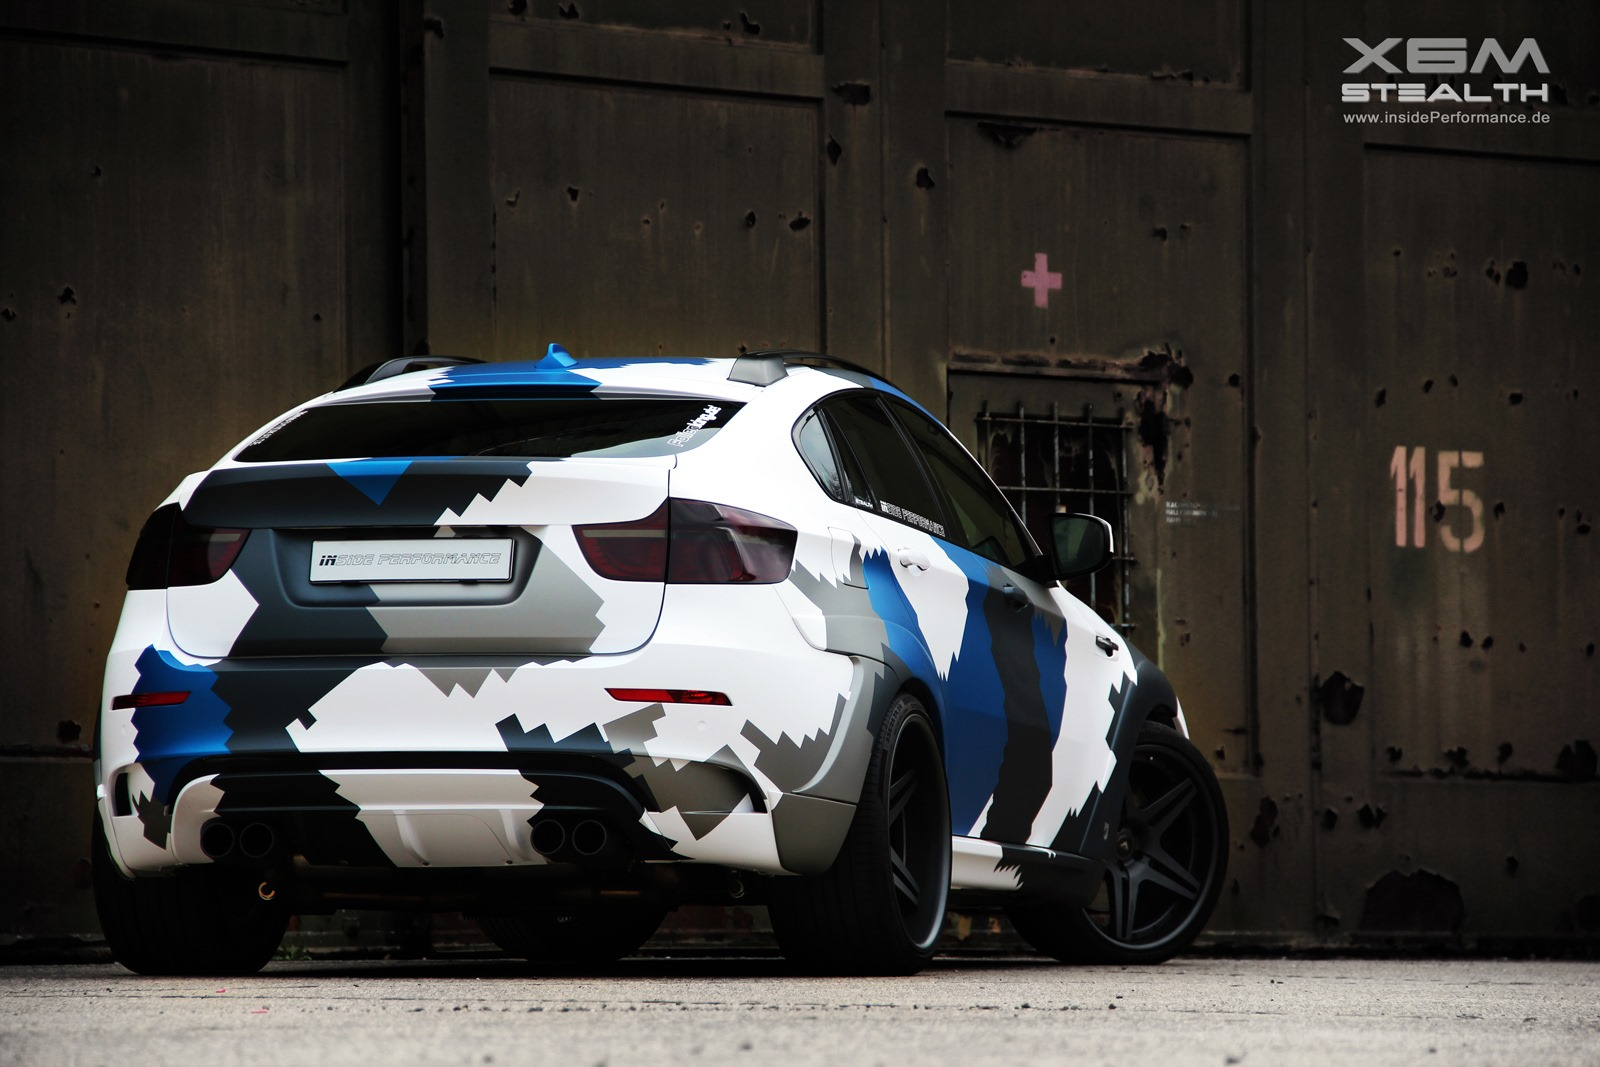 Official 700hp Bmw X6 M Stealth By Inside Performance